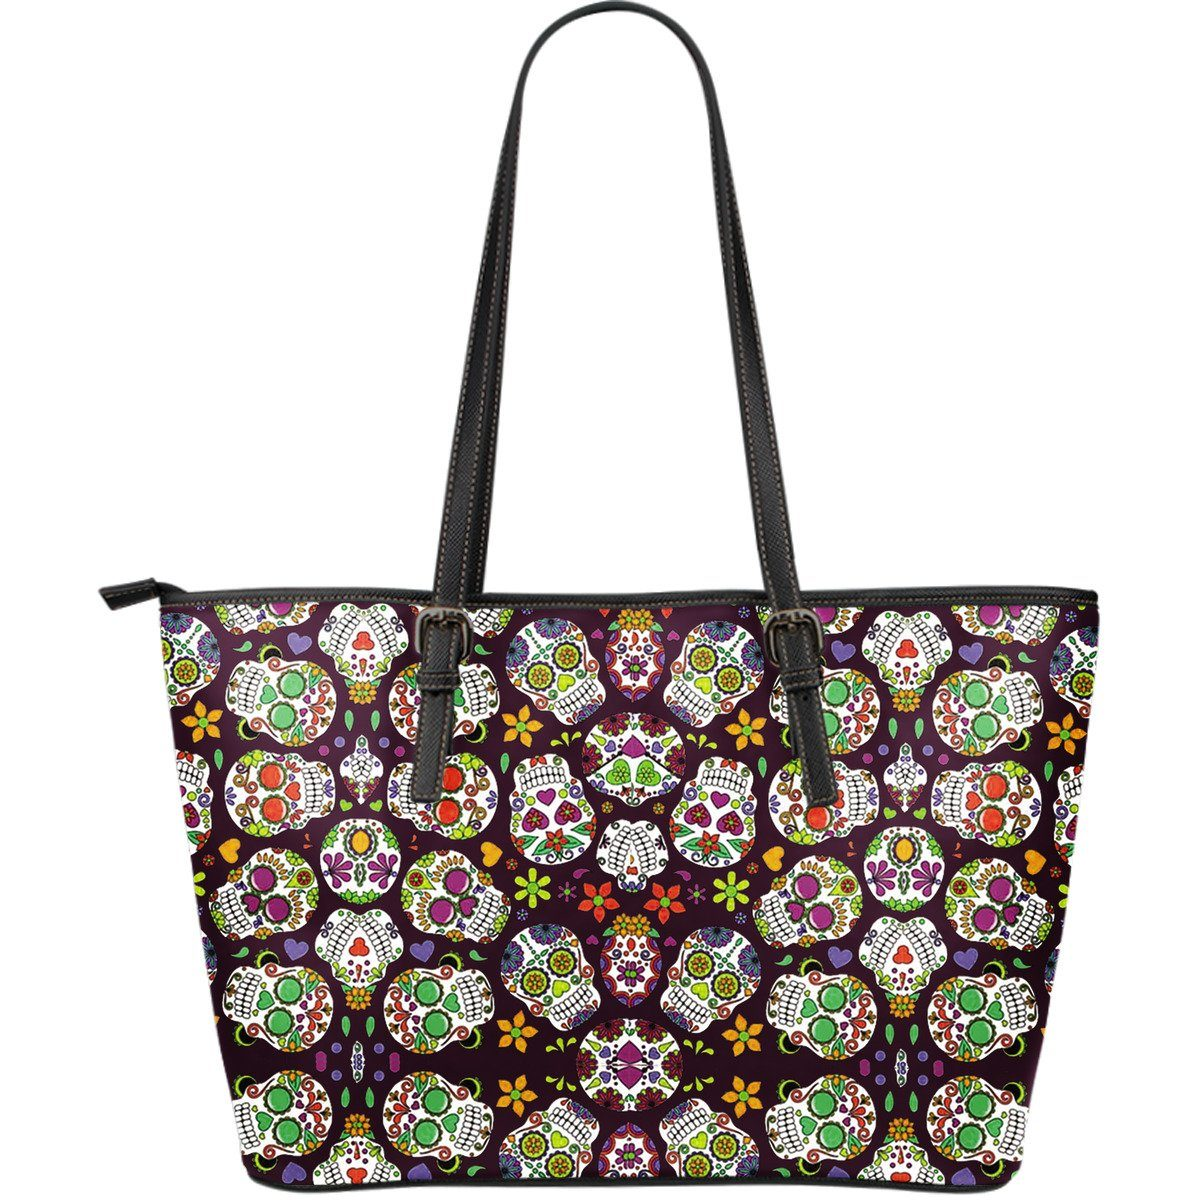 Sugar Skulls Large Leather Tote Bag - Rebels Depot